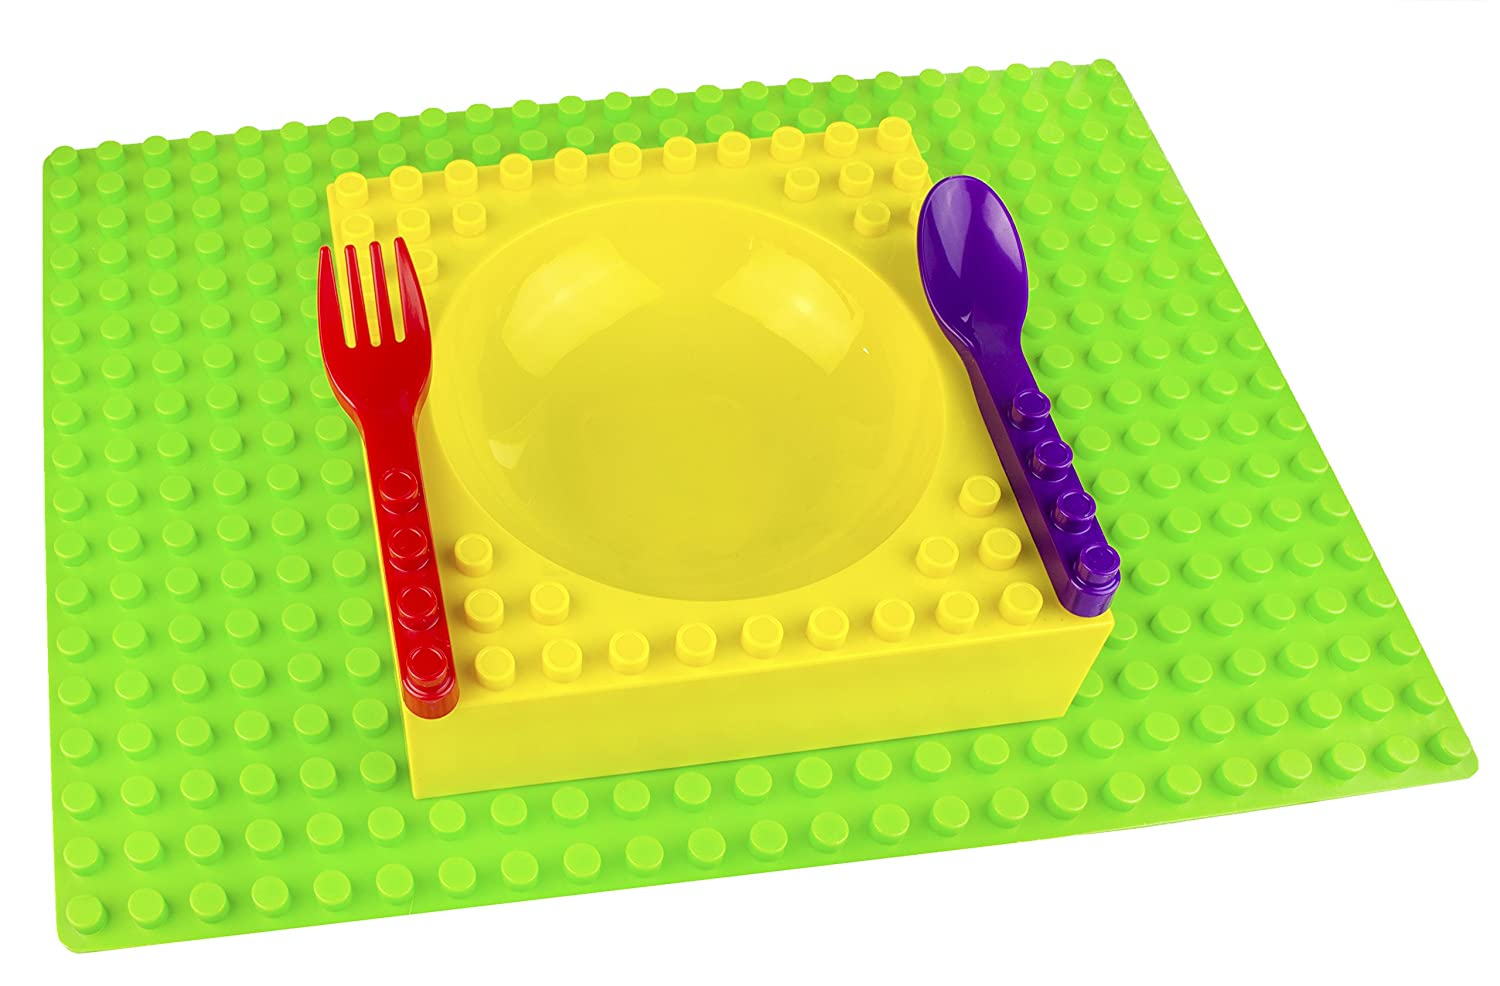 Placematix Kids Dinner Set - Eat, Play, and Learn - Innovative and Reliable Design - Safe and Non-Toxic - Microwave and Dishwasher Safe - Includes Green Placemat, Yellow Bowl, Purple Spoon, and Red Fork by Placematix   B00V54BAYU